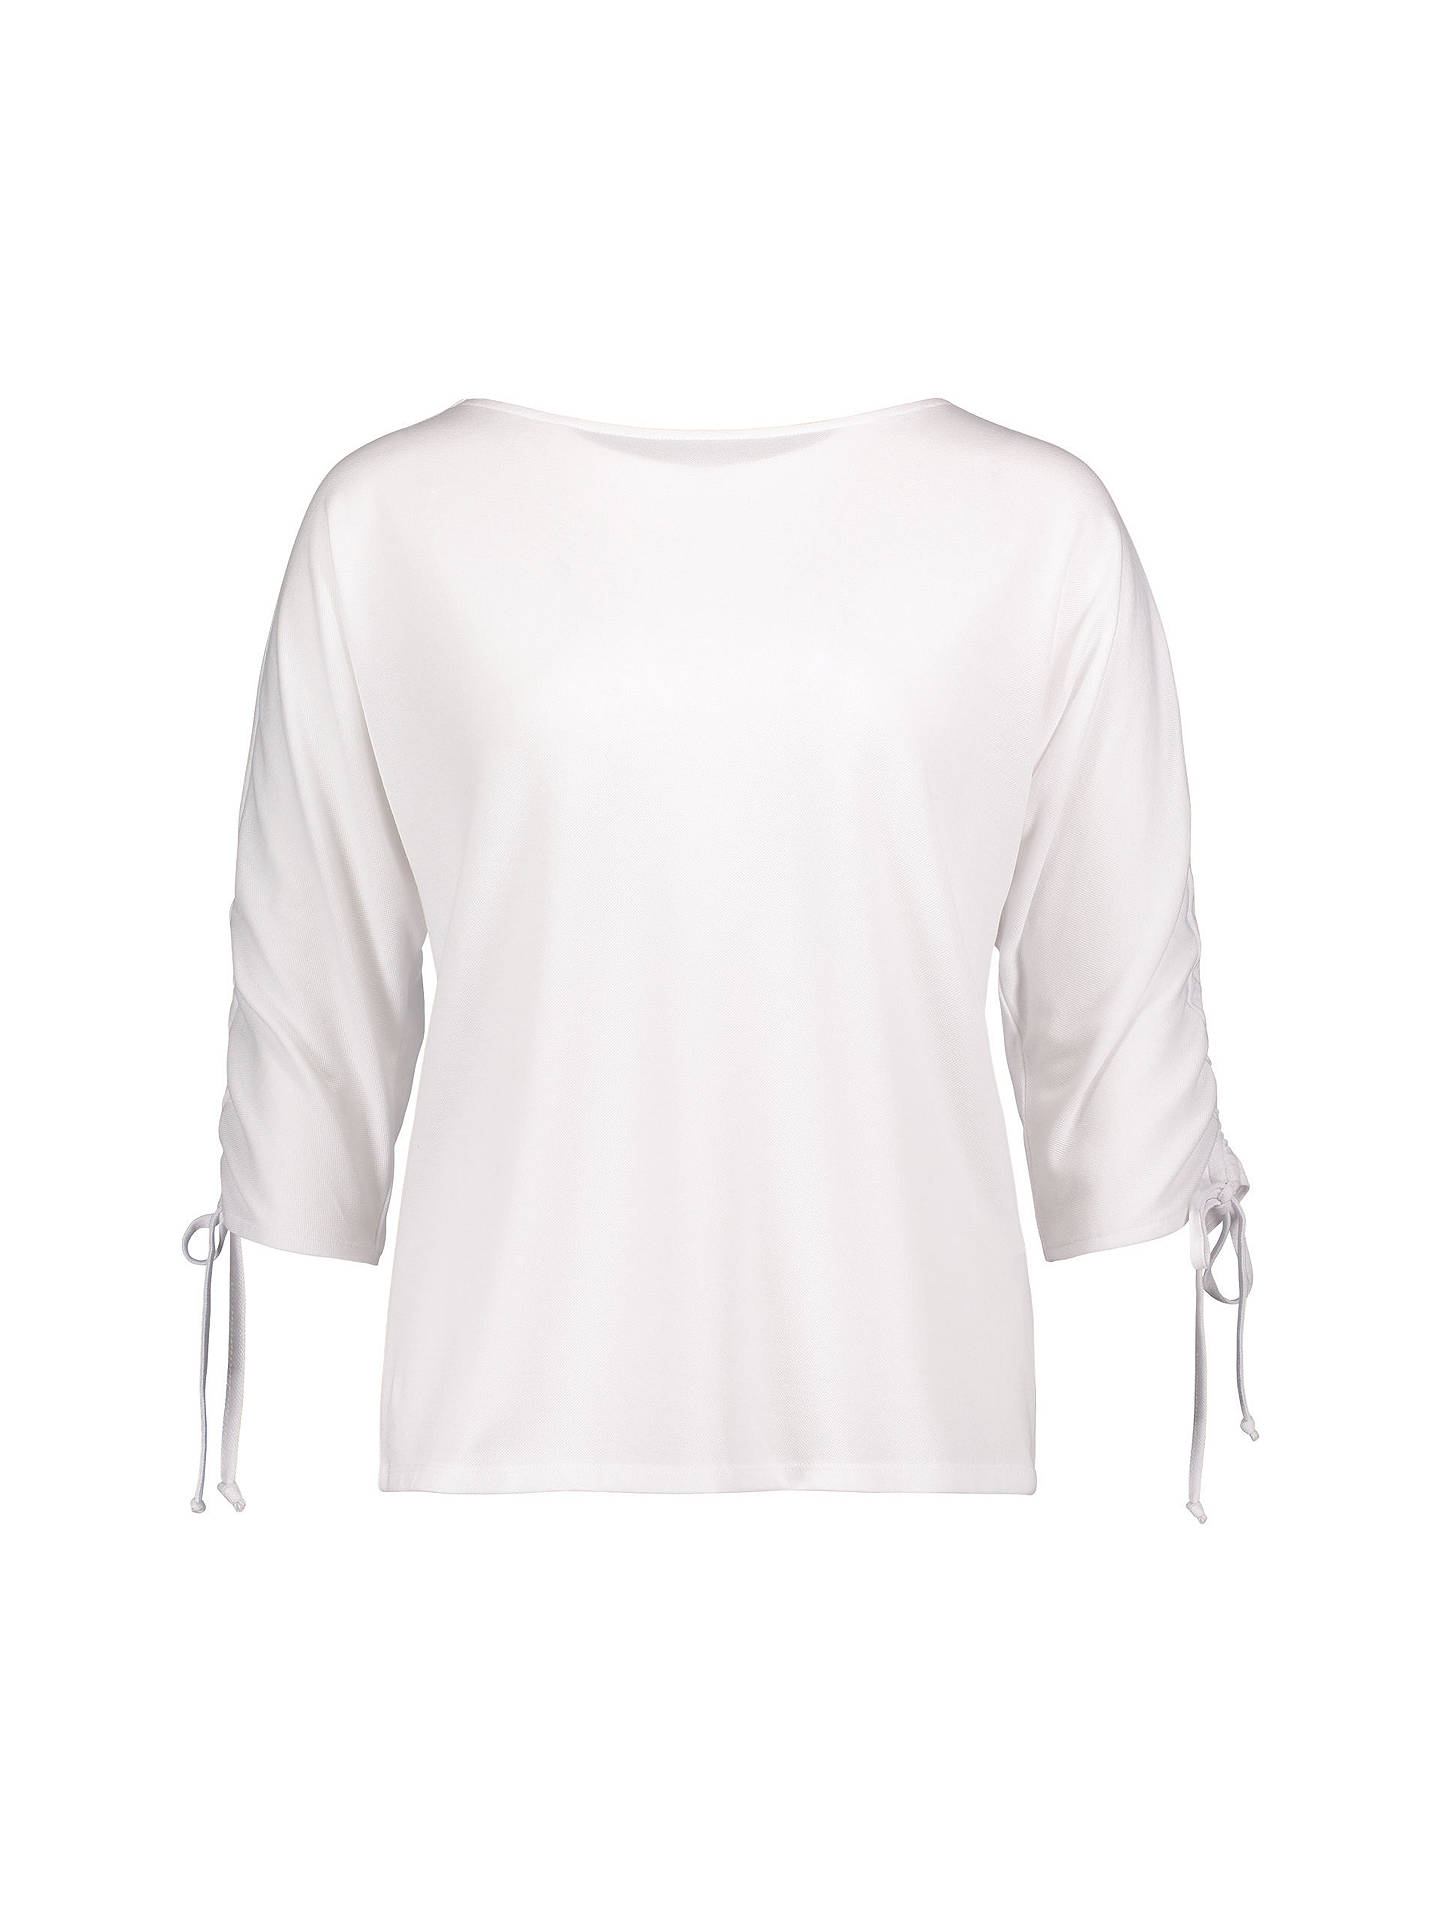 BuyBetty & Co. Textured Tie Sleeve Blouse, Bright White, 14 Online at johnlewis.com